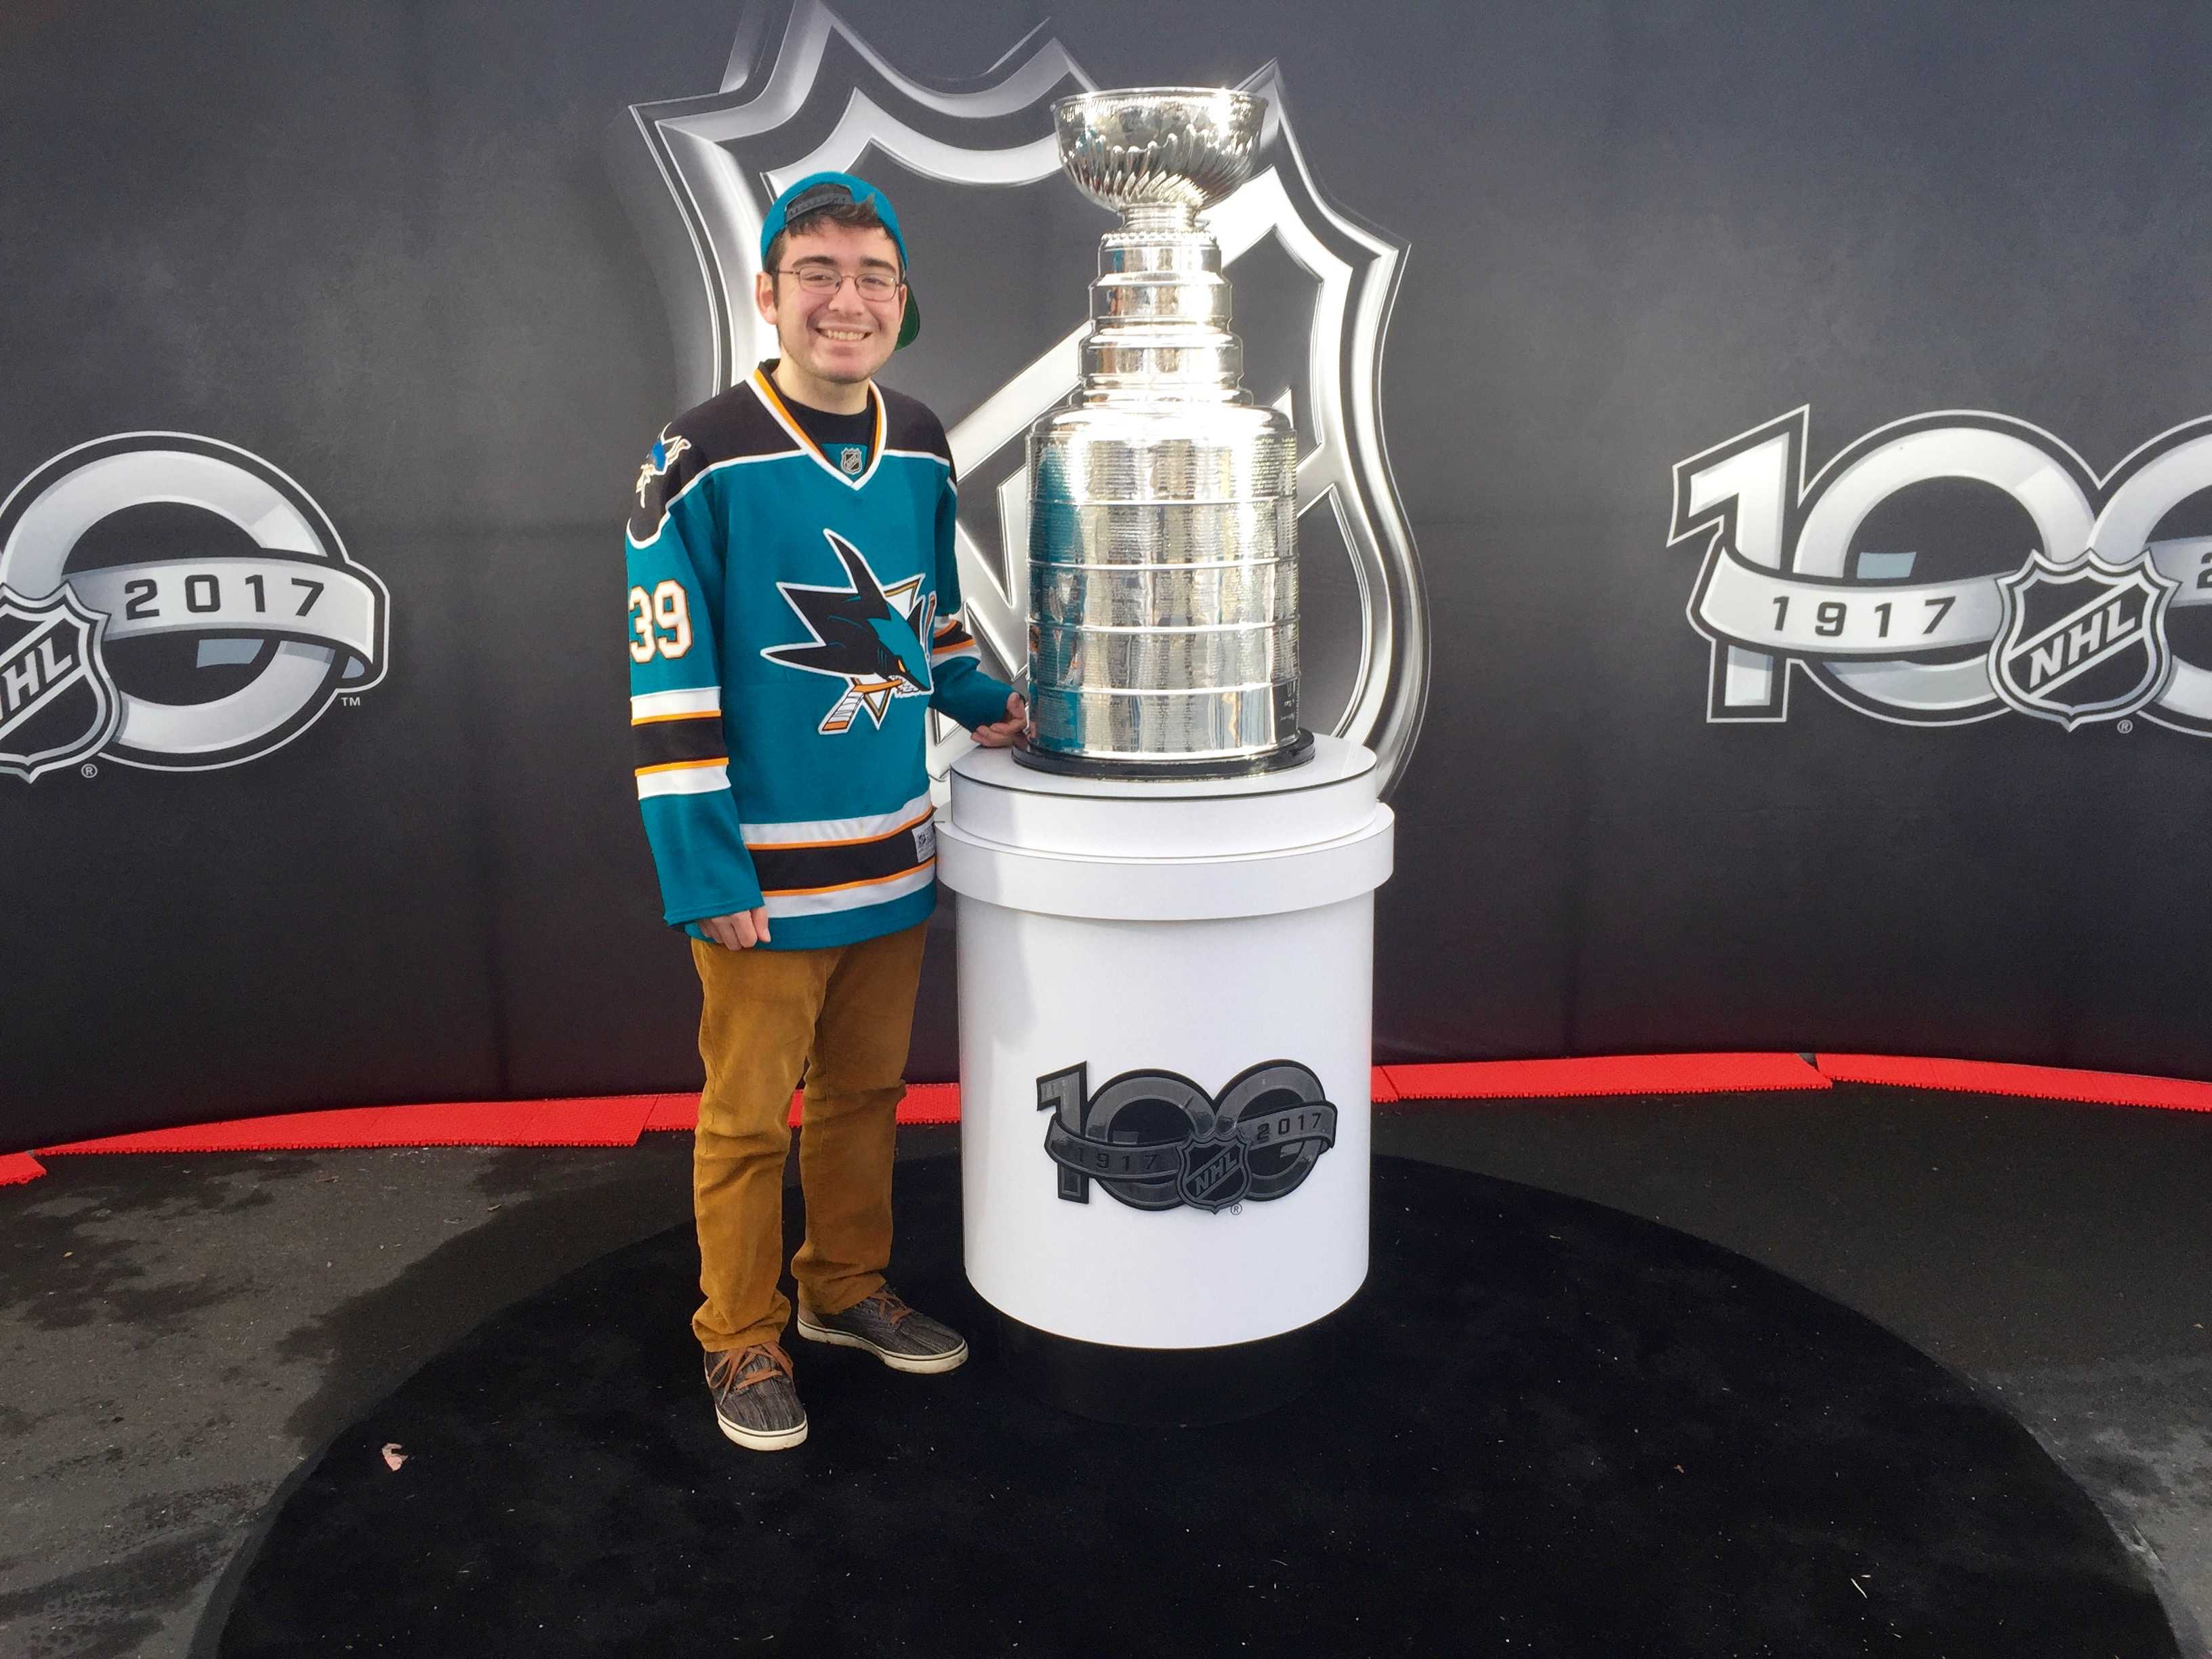 Junior Bradley Smith poses in front of the one and only Lord Stanley's Cup, given to the champion of the NHL